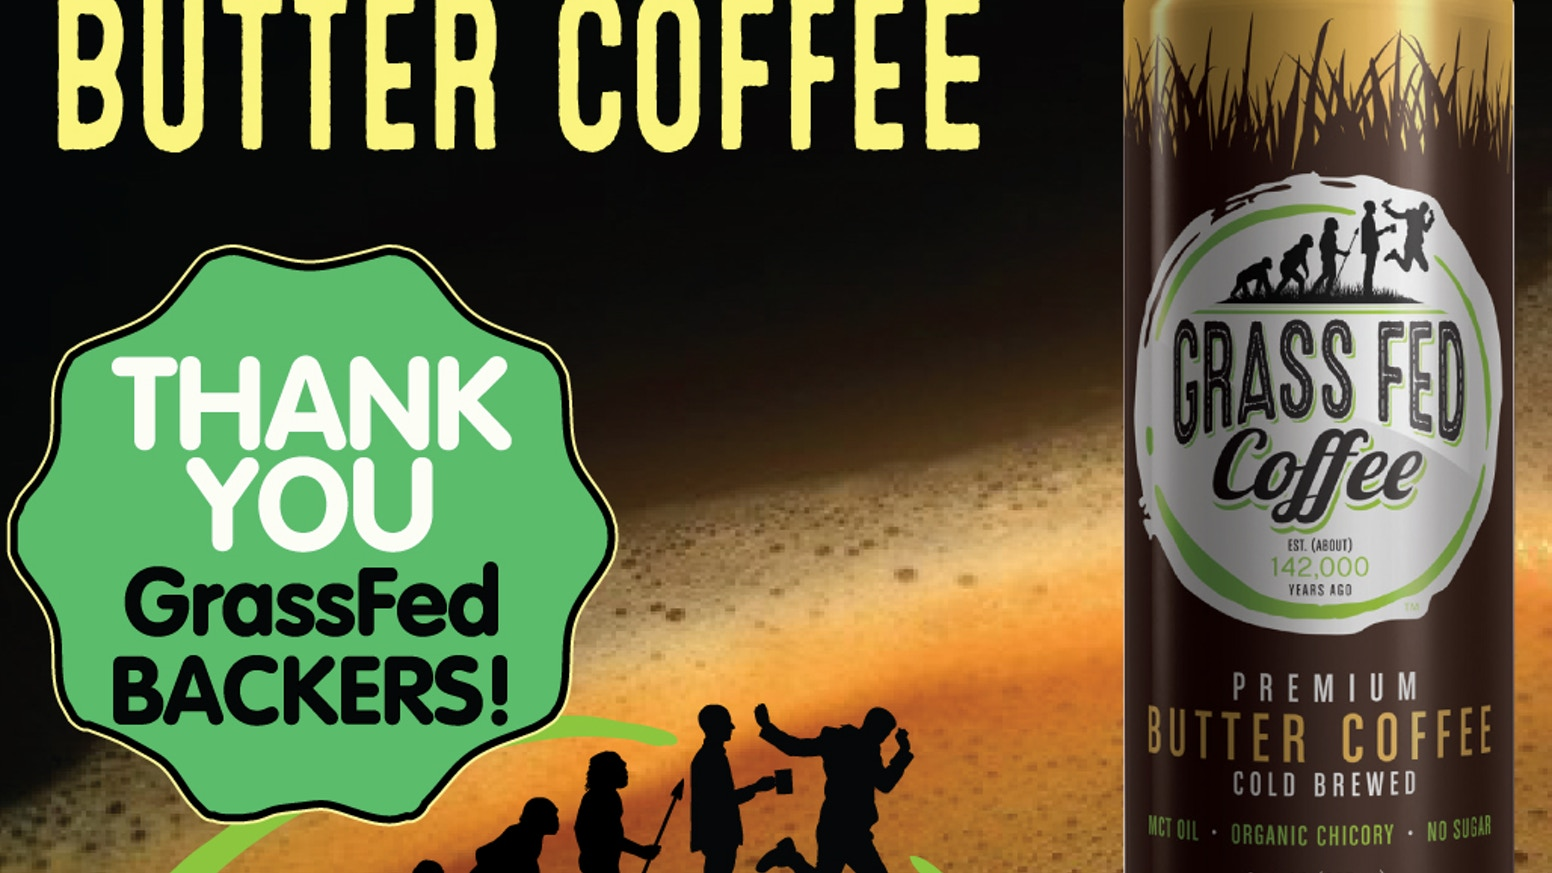 Grass Fed Coffee is smooth, creamy, delicious Butter Coffee combining cold brew coffee, grass fed butter, MCT oil, and organic chicory